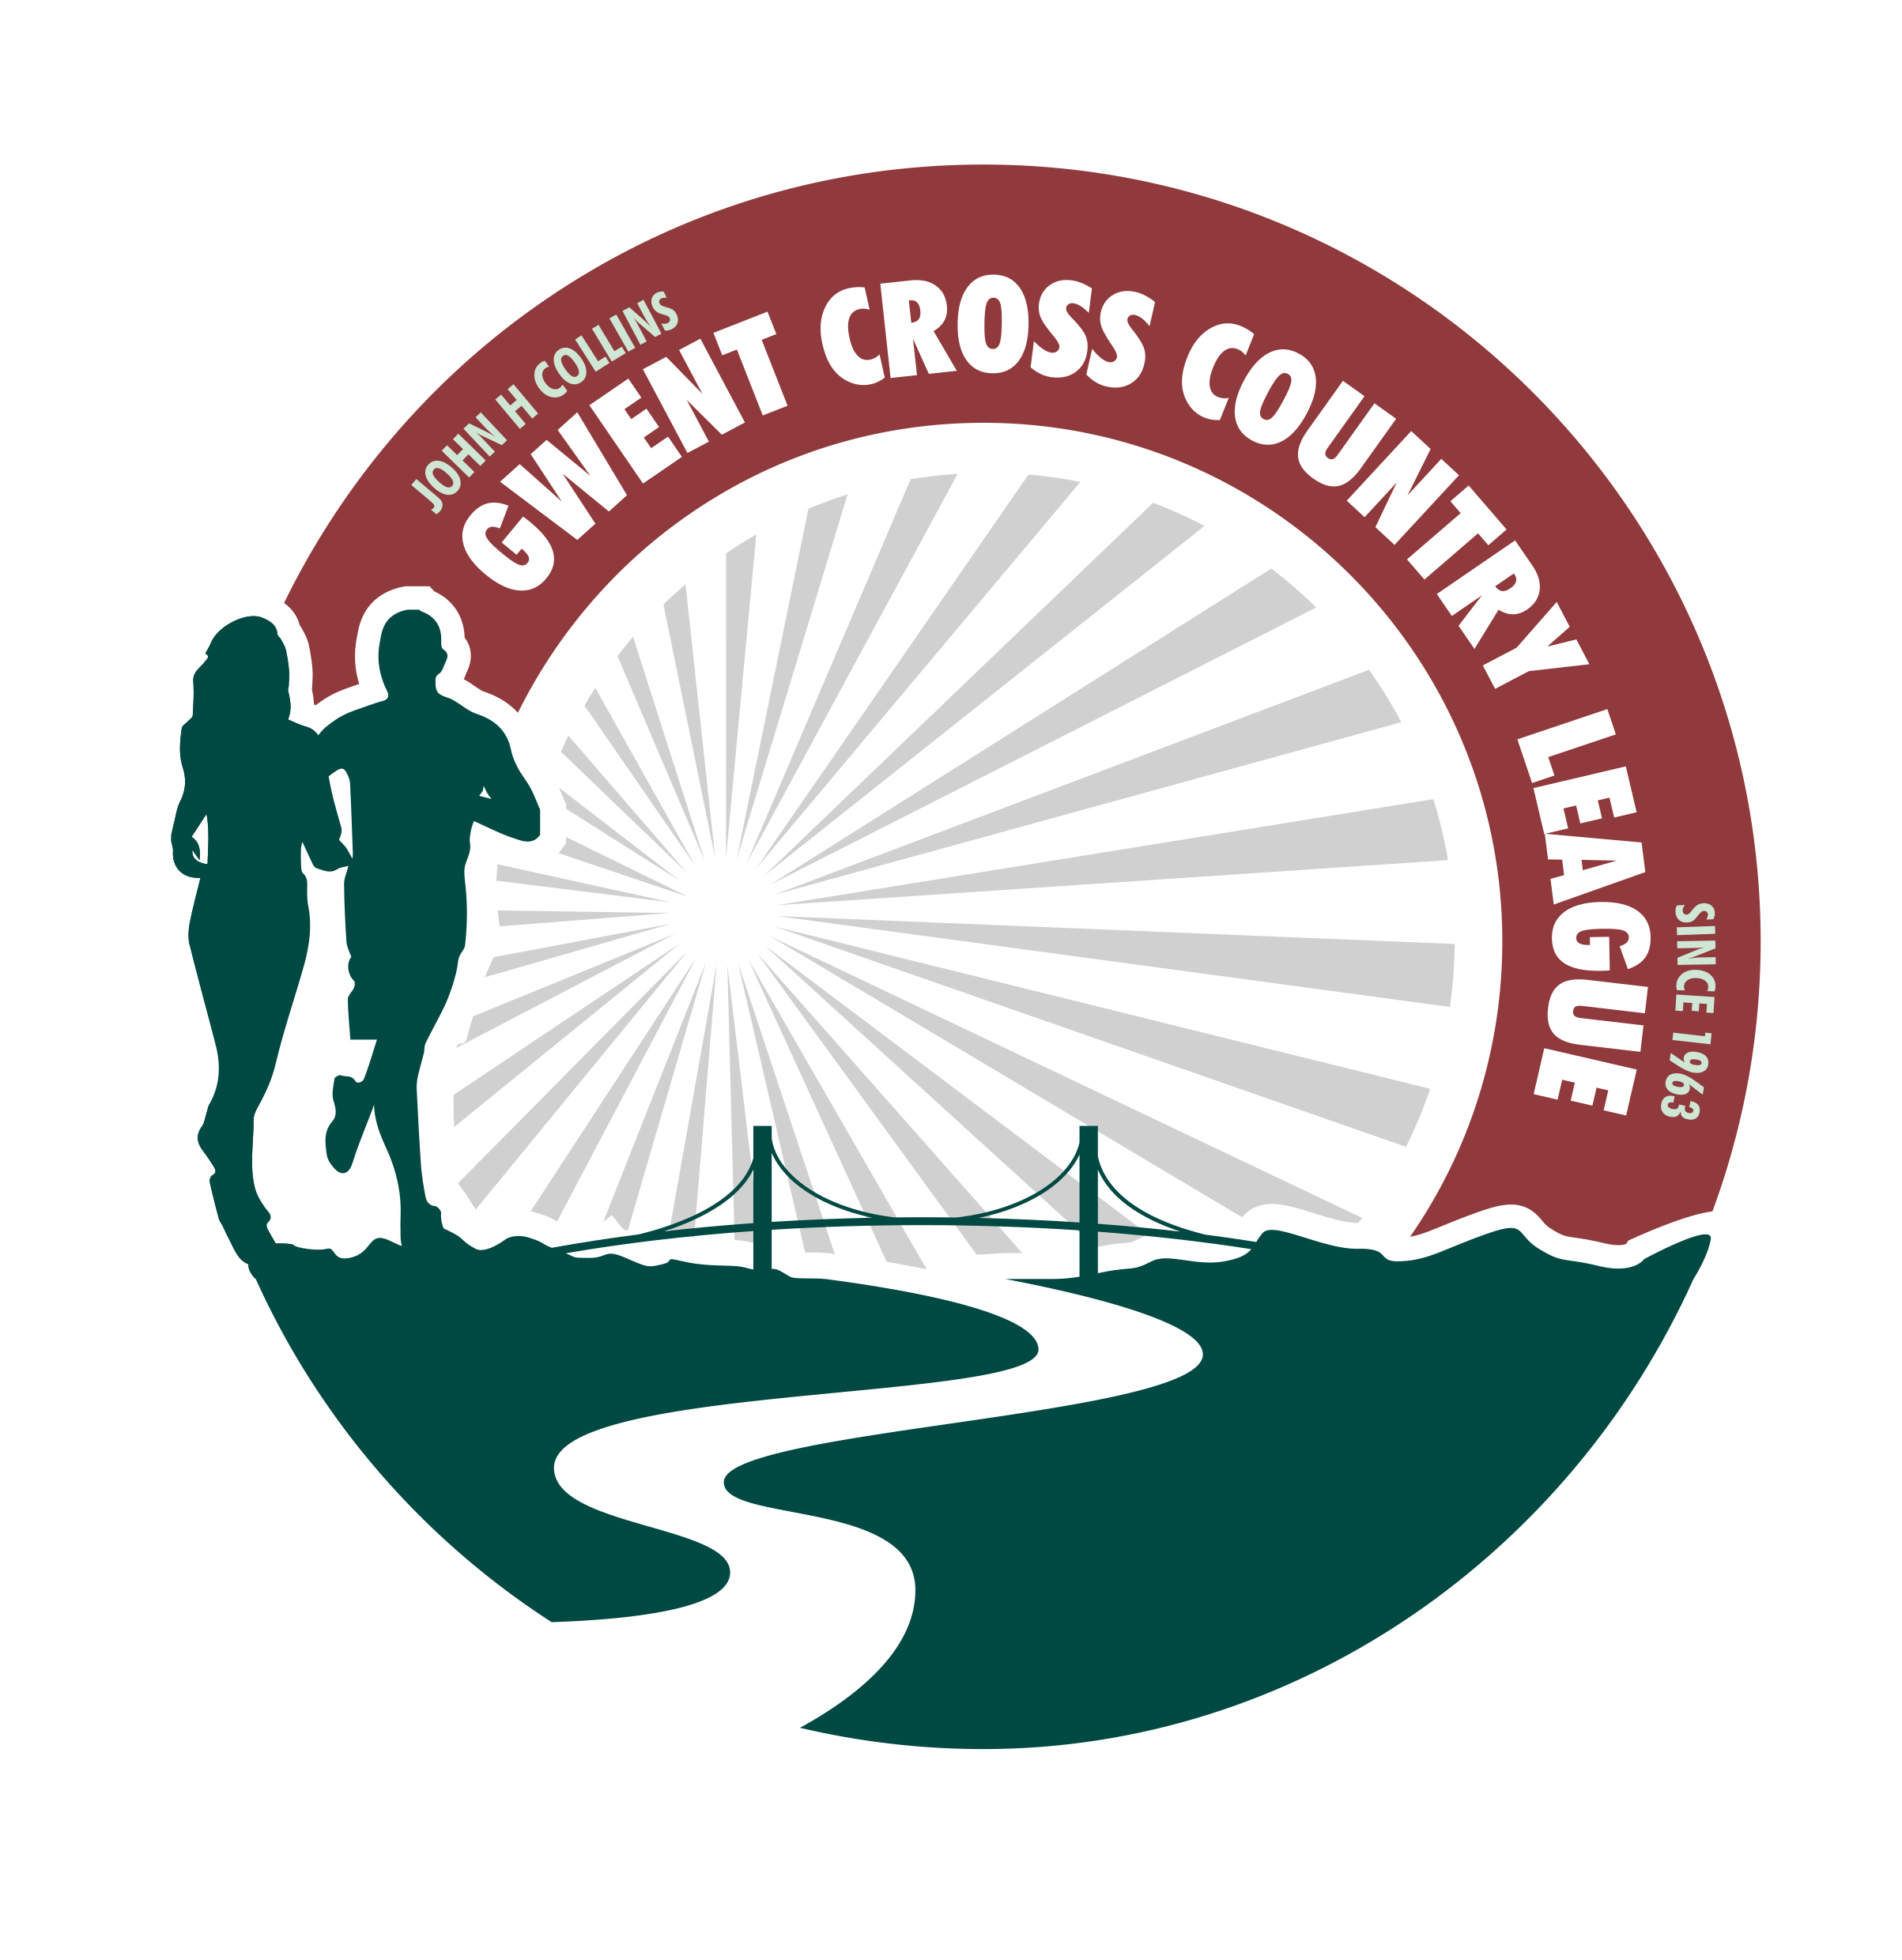 Gwent League Cross Country